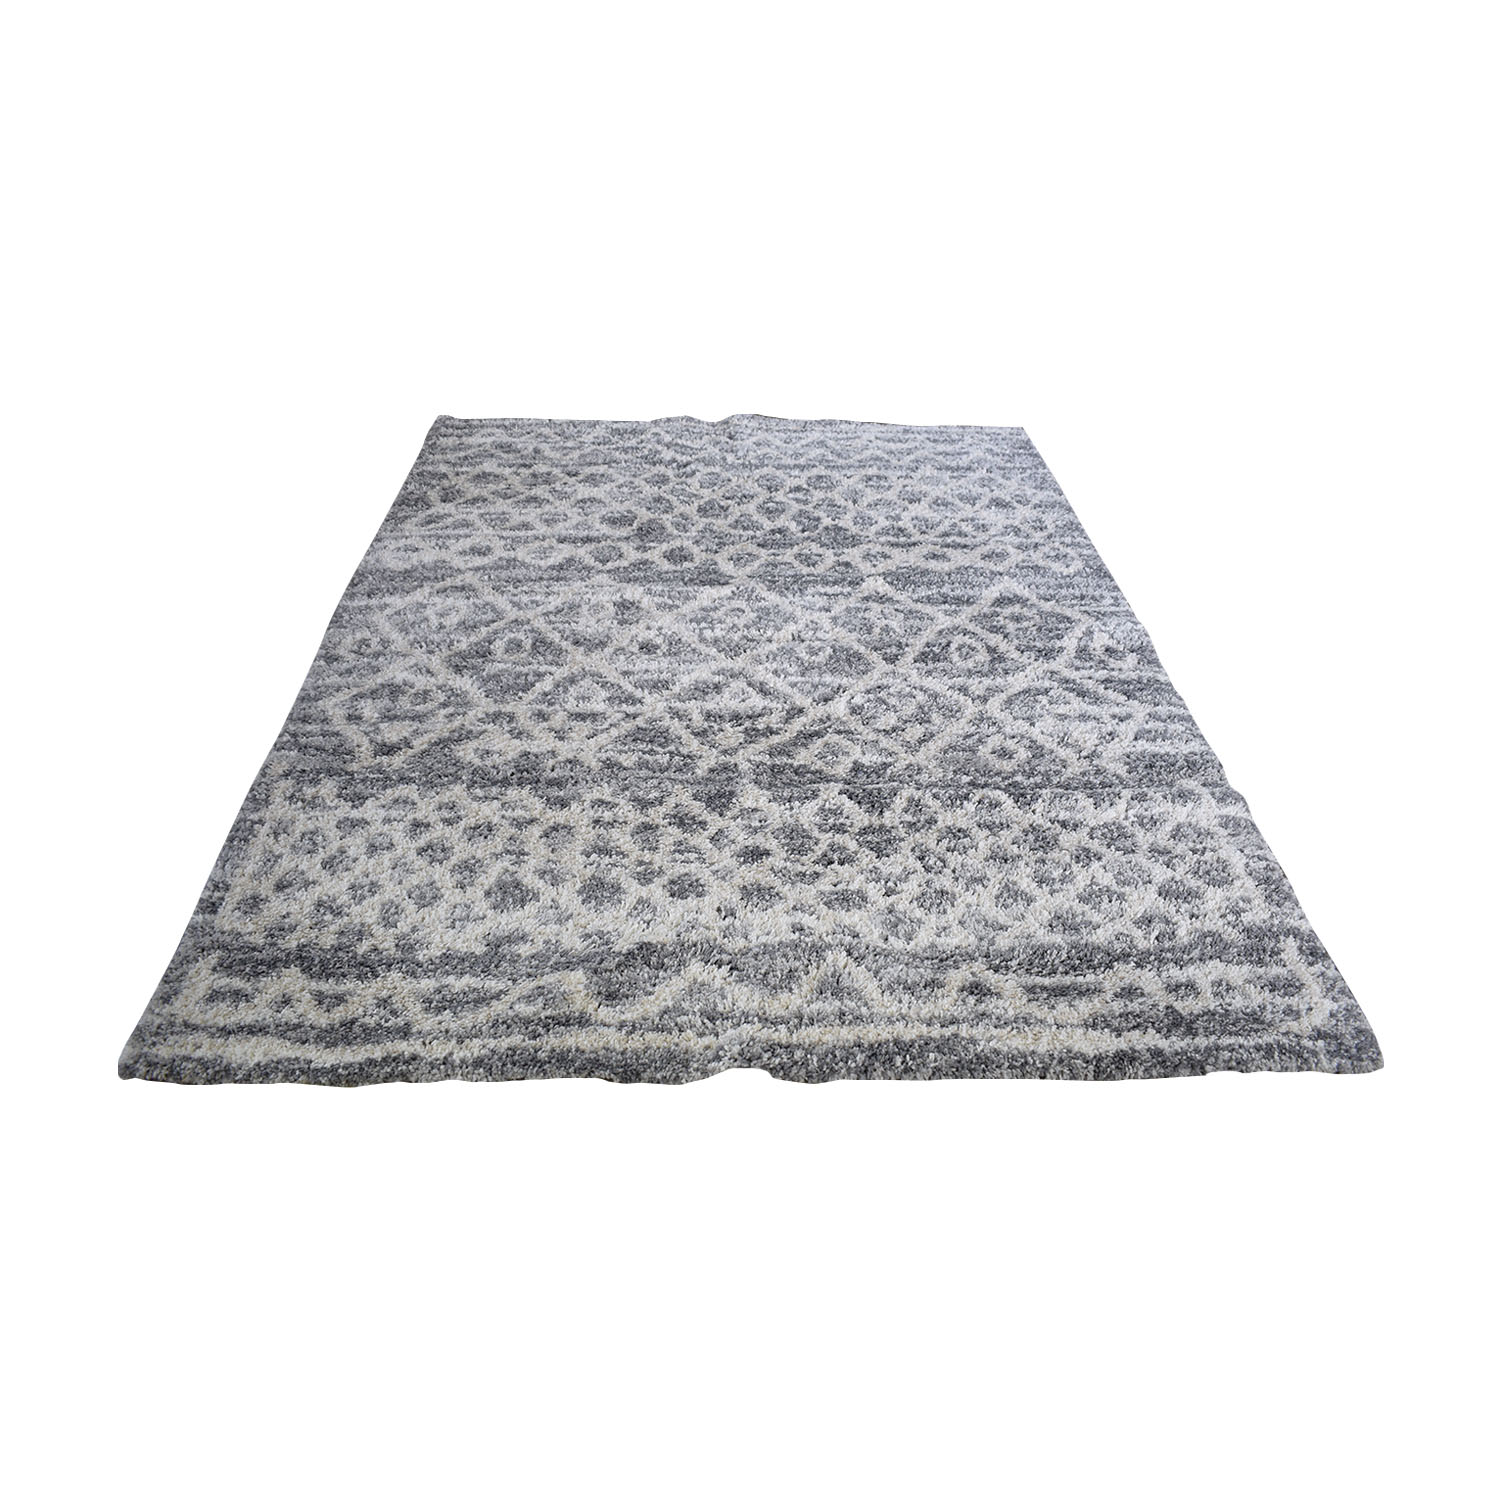 Loloi Quincy Shag Rug / Decor